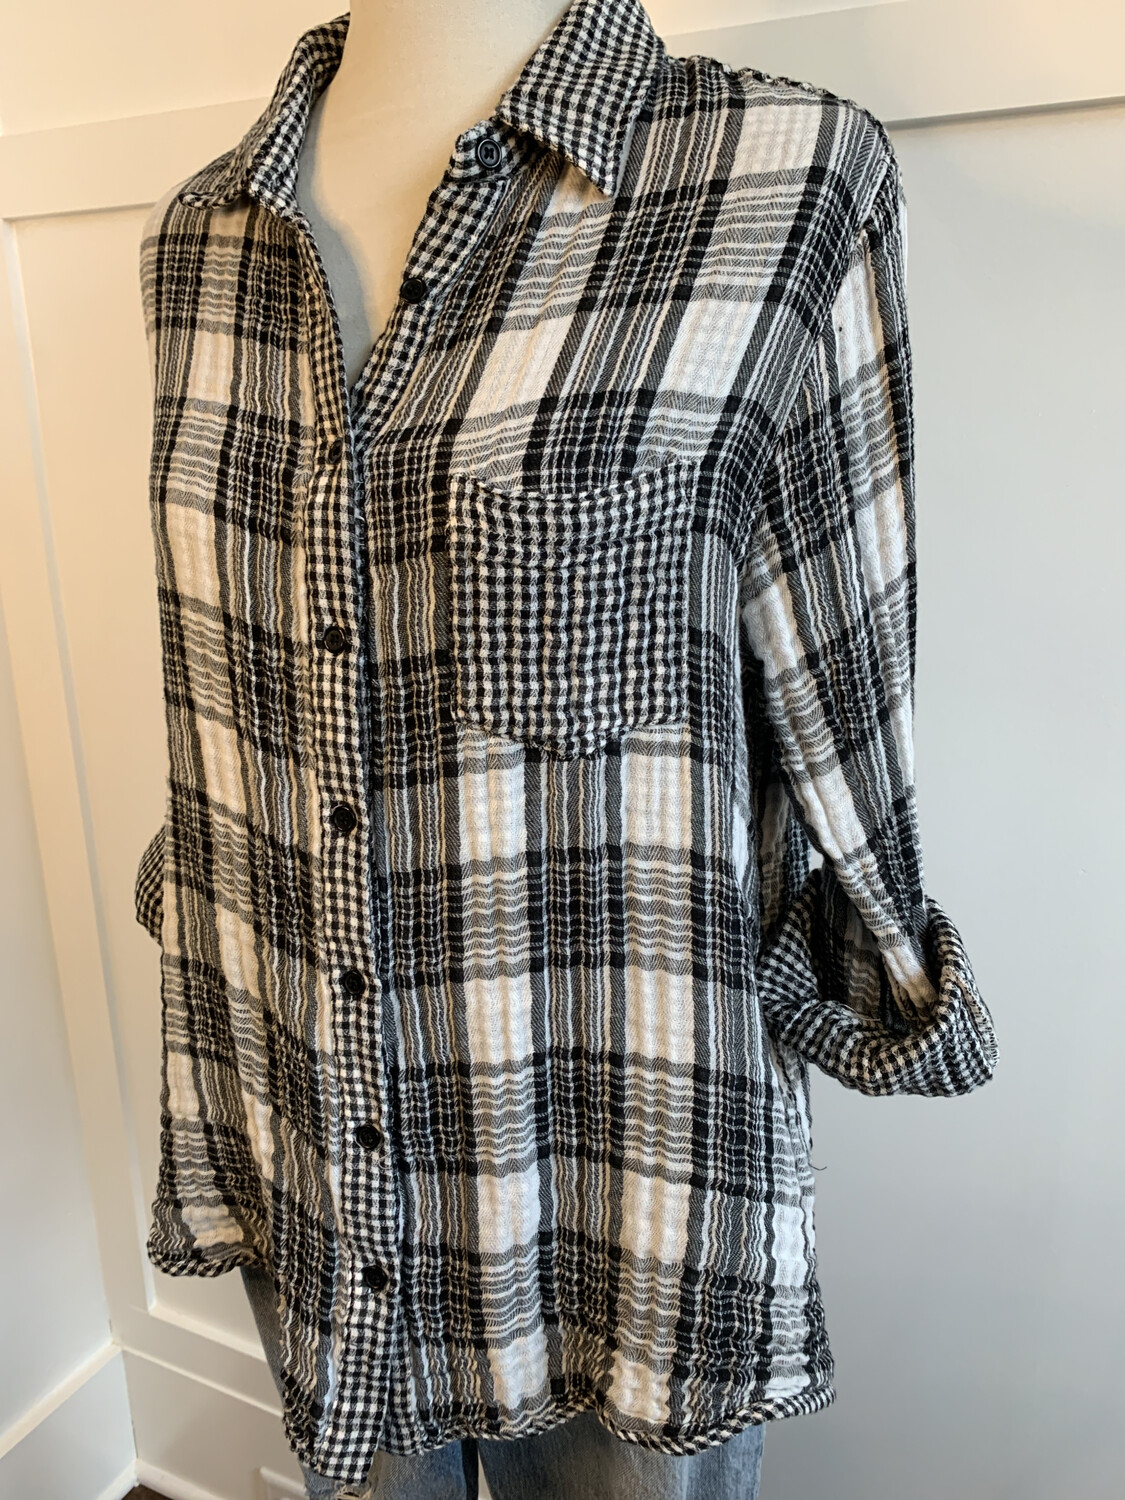 Kori America Black & White Plaid Button Up Top - L